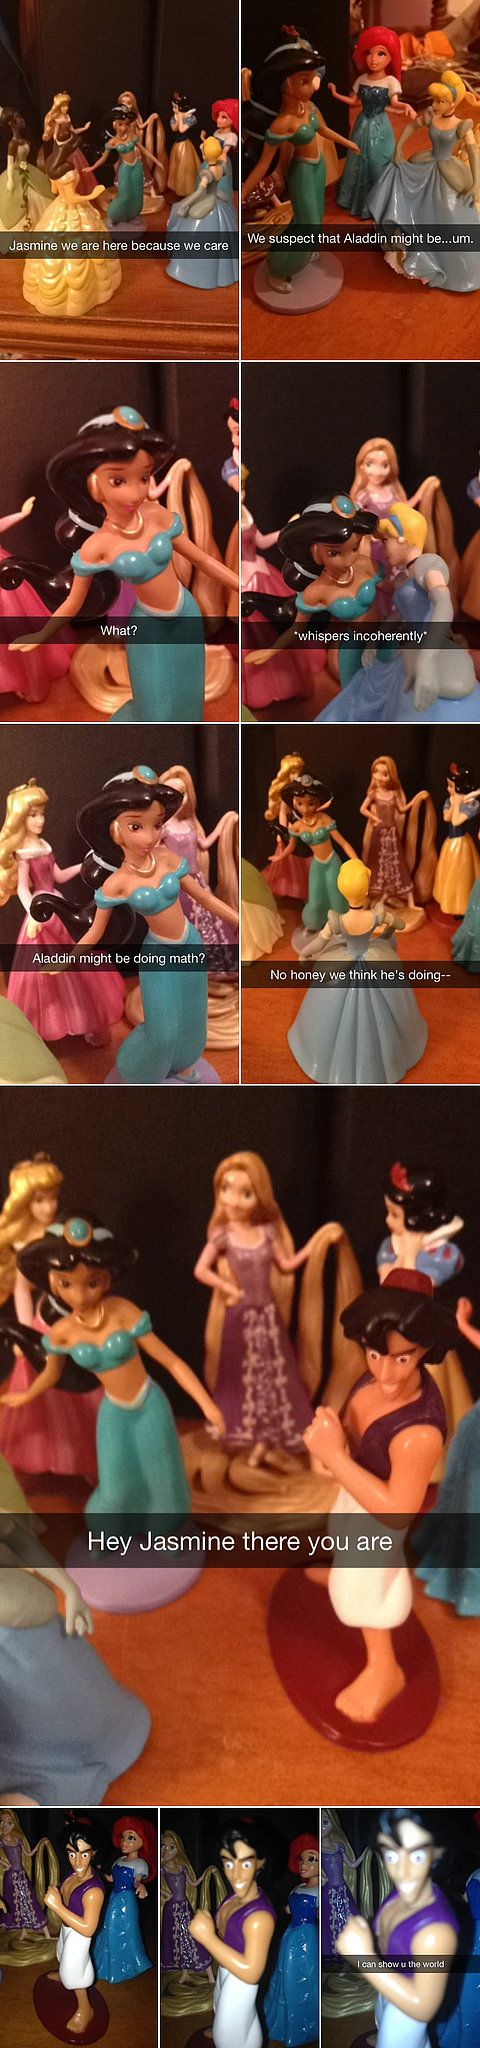 If Disney Princesses were on Snapchat, this is what it would look like: